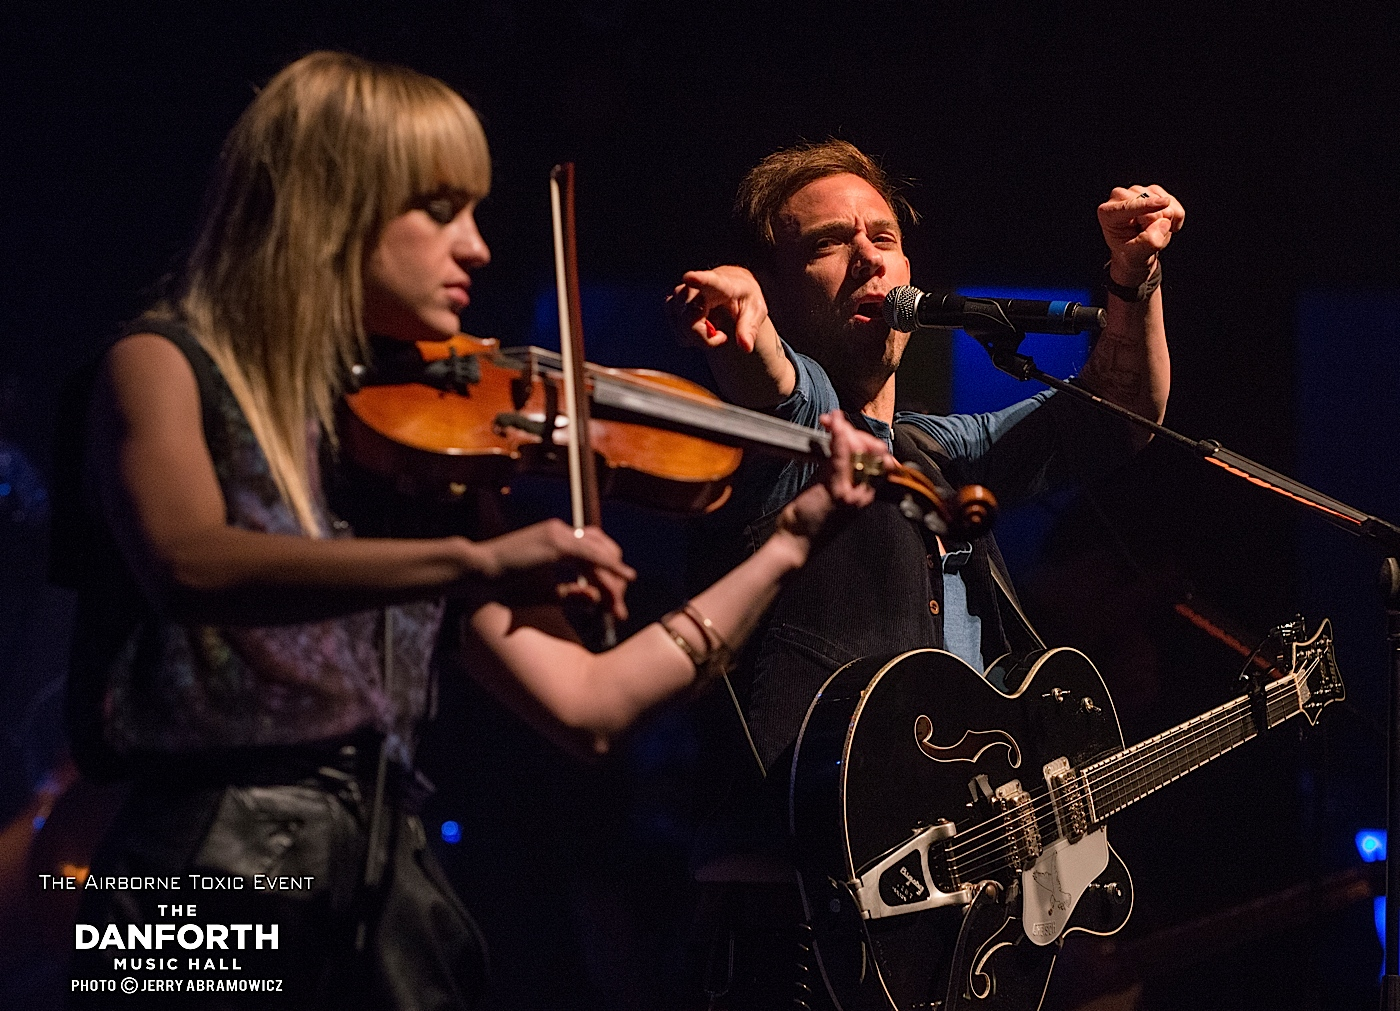 20130514 The Airborne Toxic Event performs at The Danforth Music Hall Toronto 0066